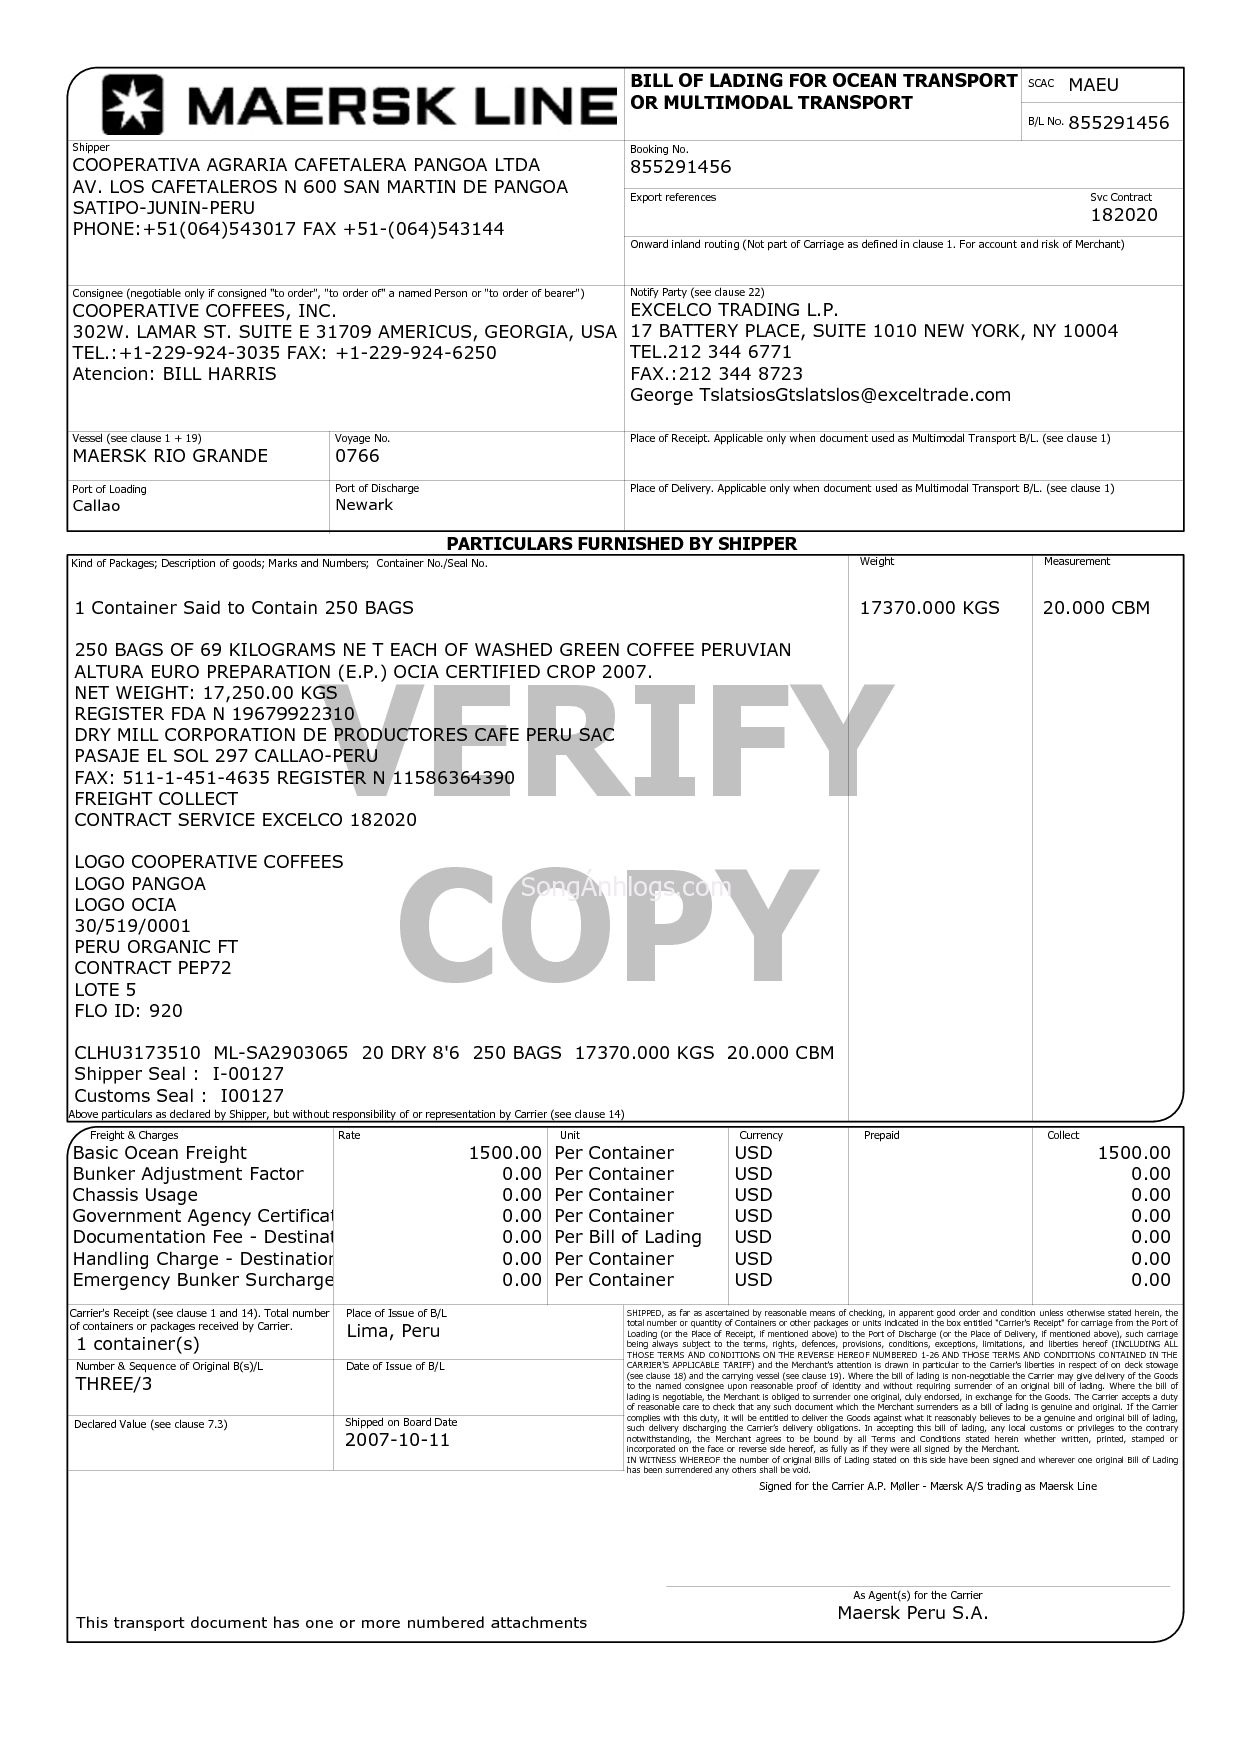 Free Bill Of Lading Form For Car Transport